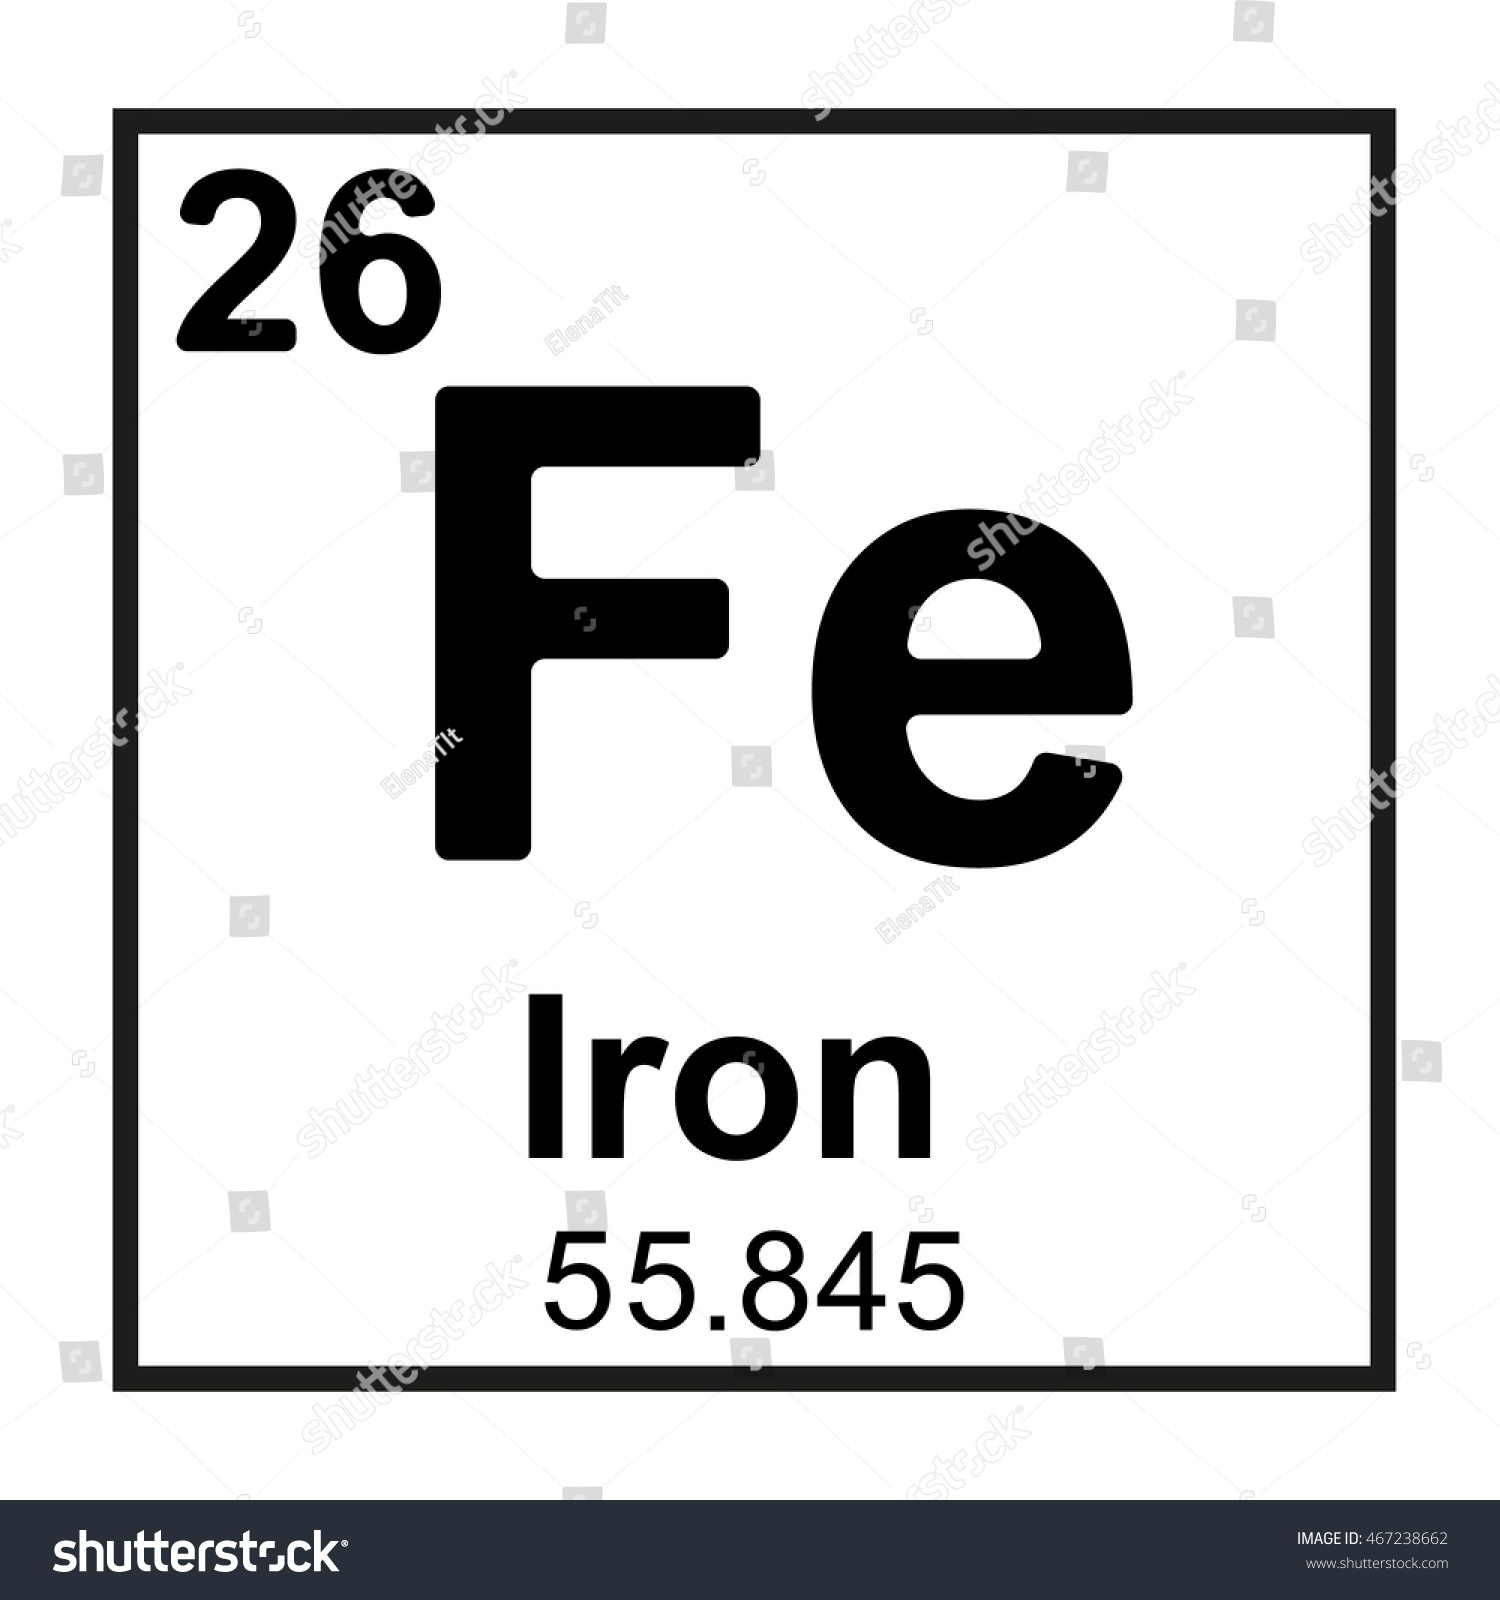 Periodic table element iron stock vector 467238662 shutterstock periodic table element iron gamestrikefo Choice Image